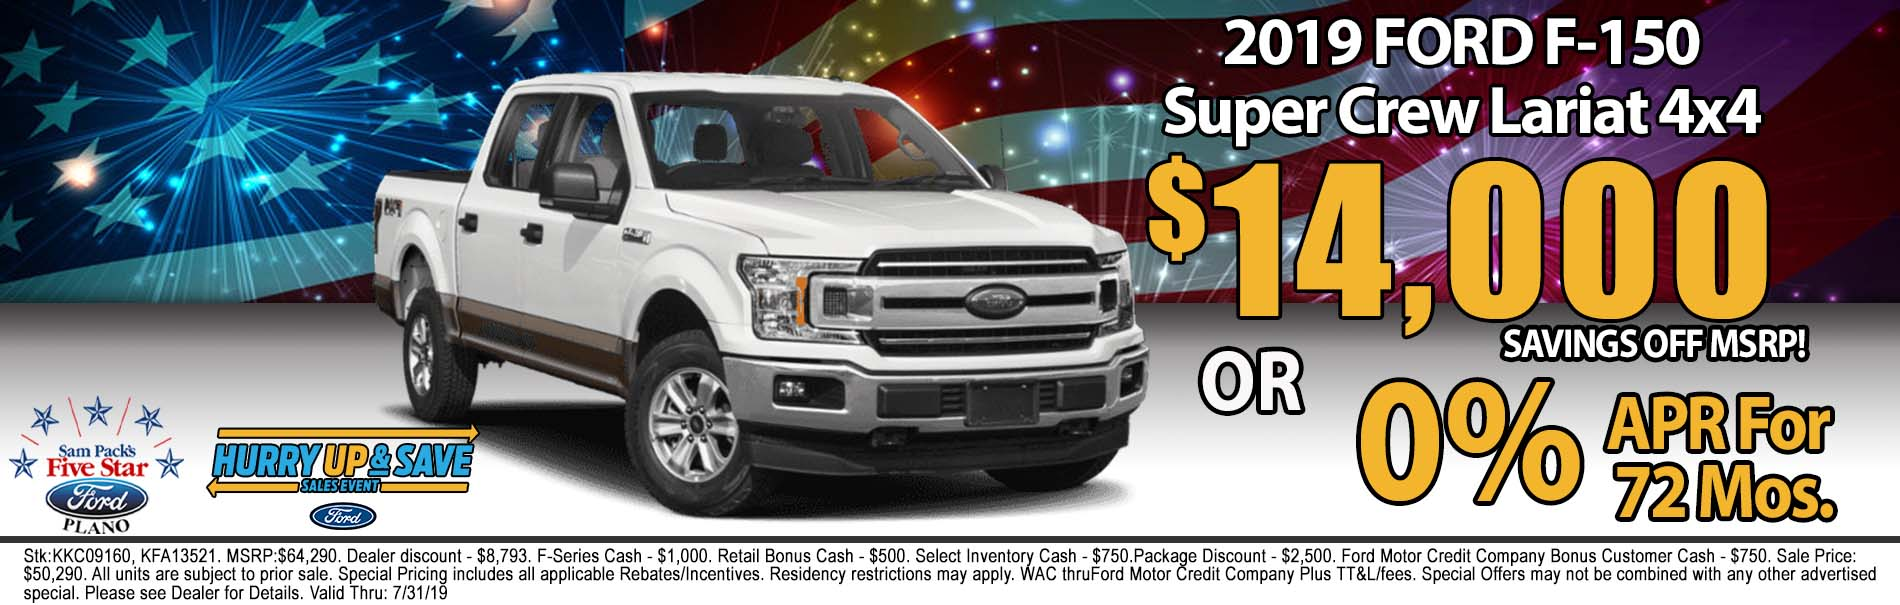 Sam Pack S Five Star Ford Of Plano New Used Ford Dealership